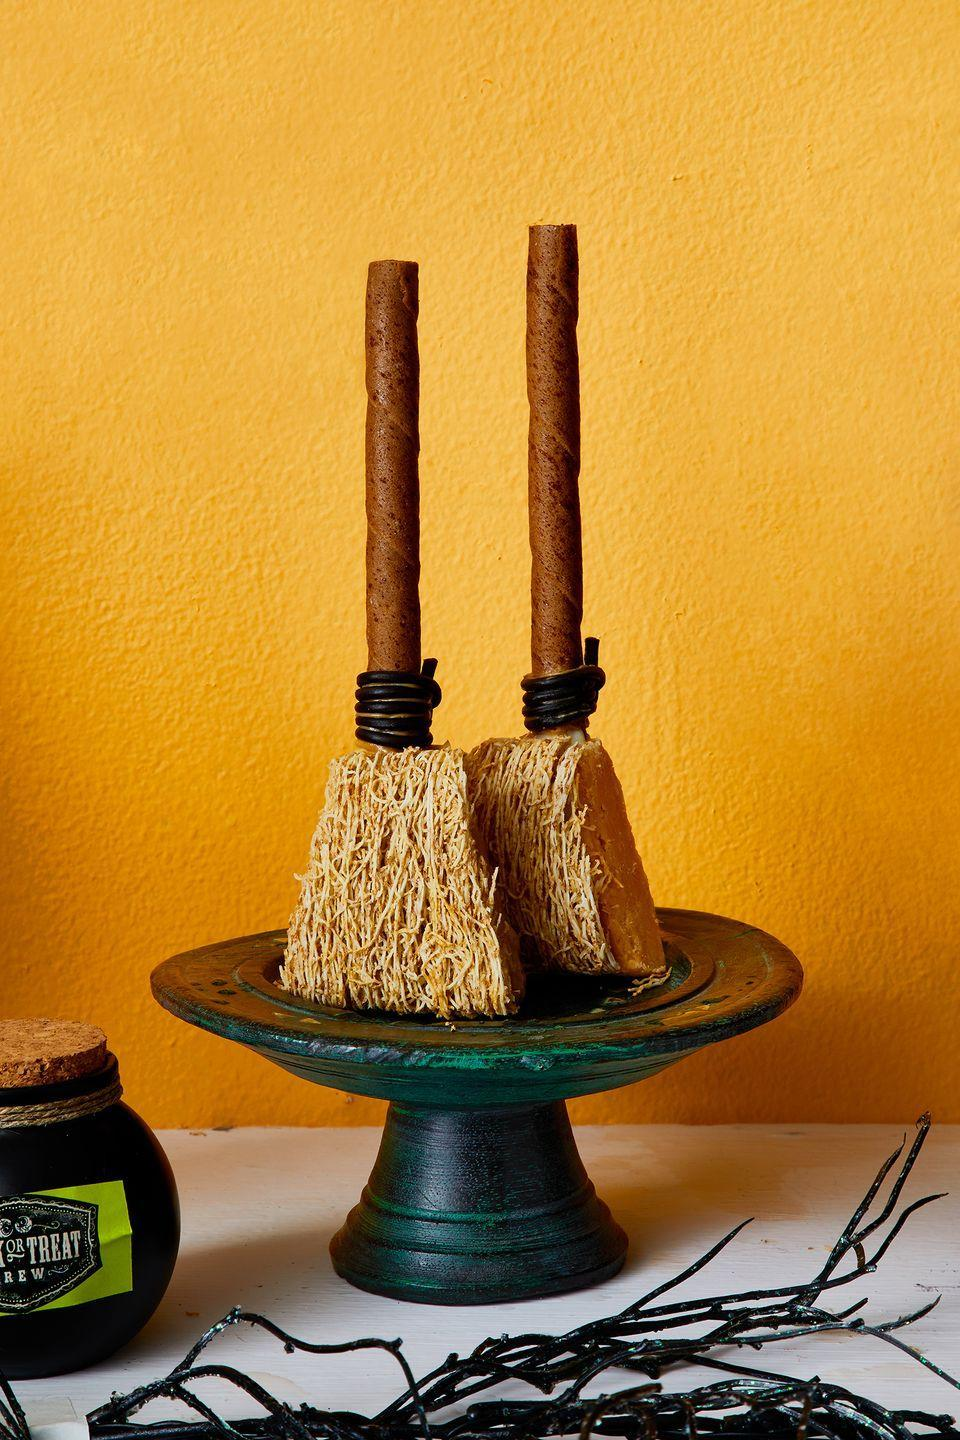 """<p>Boost your Halloween table's visual appeal with these mini fudge broomsticks that are almost too cute to eat. </p><p><a class=""""link rapid-noclick-resp"""" href=""""https://go.redirectingat.com?id=74968X1596630&url=https%3A%2F%2Fwww.walmart.com%2Fip%2FHERSHEY-S-Hot-Fudge-Topping-Baking-Supplies-12-8-oz-Jar%2F20702794&sref=https%3A%2F%2Fwww.goodhousekeeping.com%2Fholidays%2Fhalloween-ideas%2Fg33437890%2Fhalloween-table-decorations-centerpieces%2F"""" rel=""""nofollow noopener"""" target=""""_blank"""" data-ylk=""""slk:SHOP FUDGE"""">SHOP FUDGE</a></p>"""